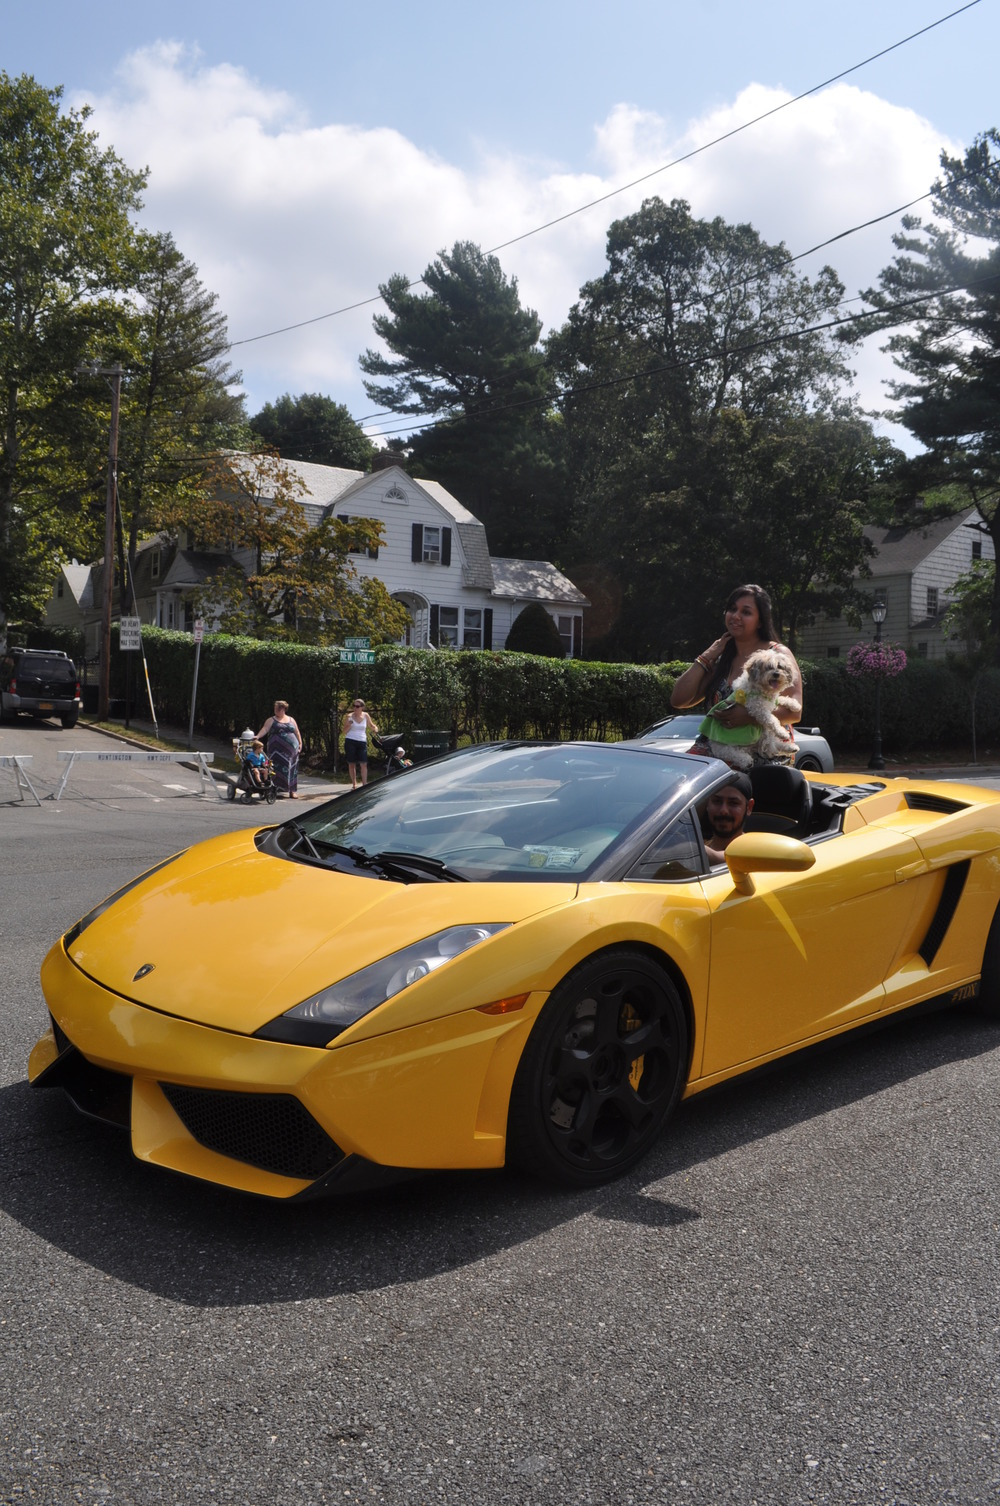 Pooches – and their human companions – make the way down New York Avenue in style in a bright-yellow Lamborghini.